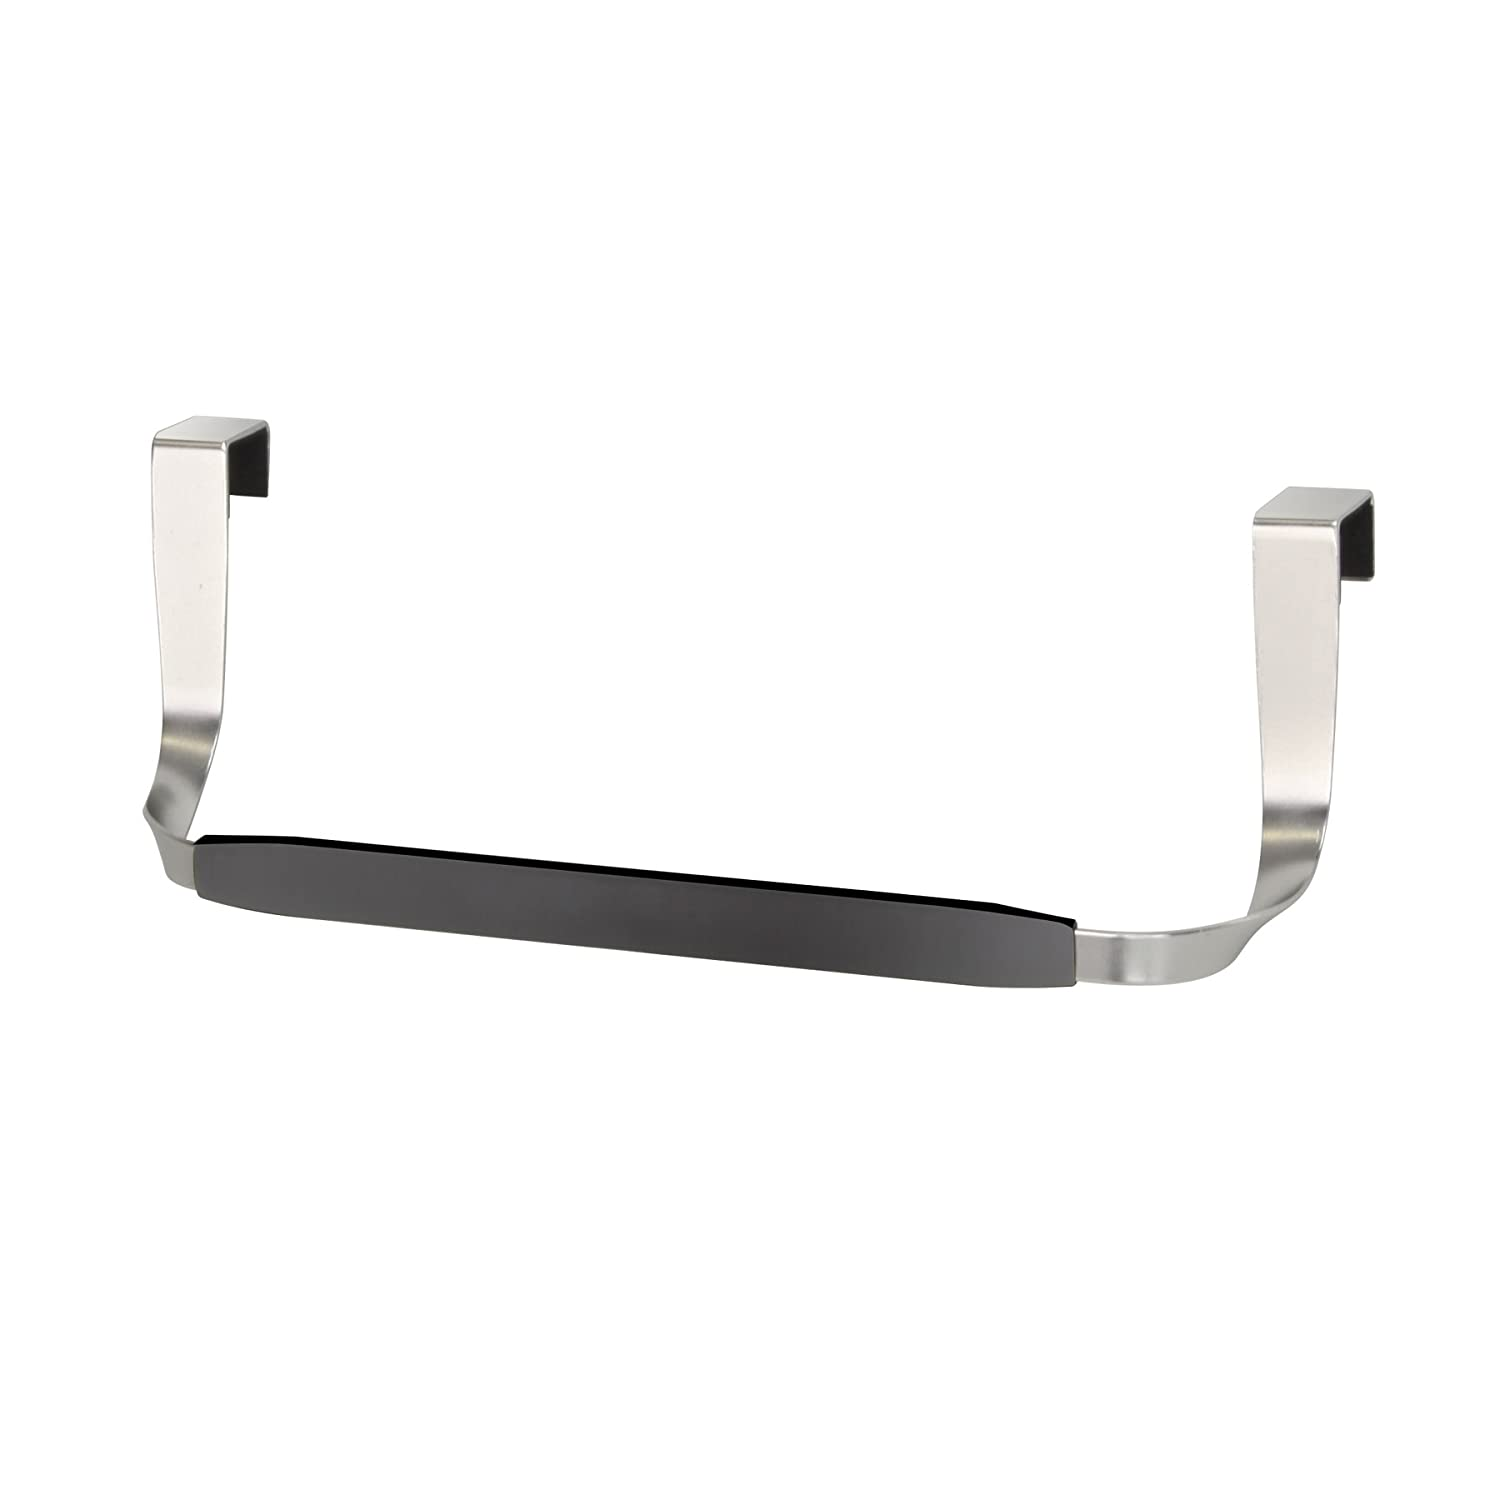 Umbra Schnook Over-The-Cabinet Towel Bar 330043-047